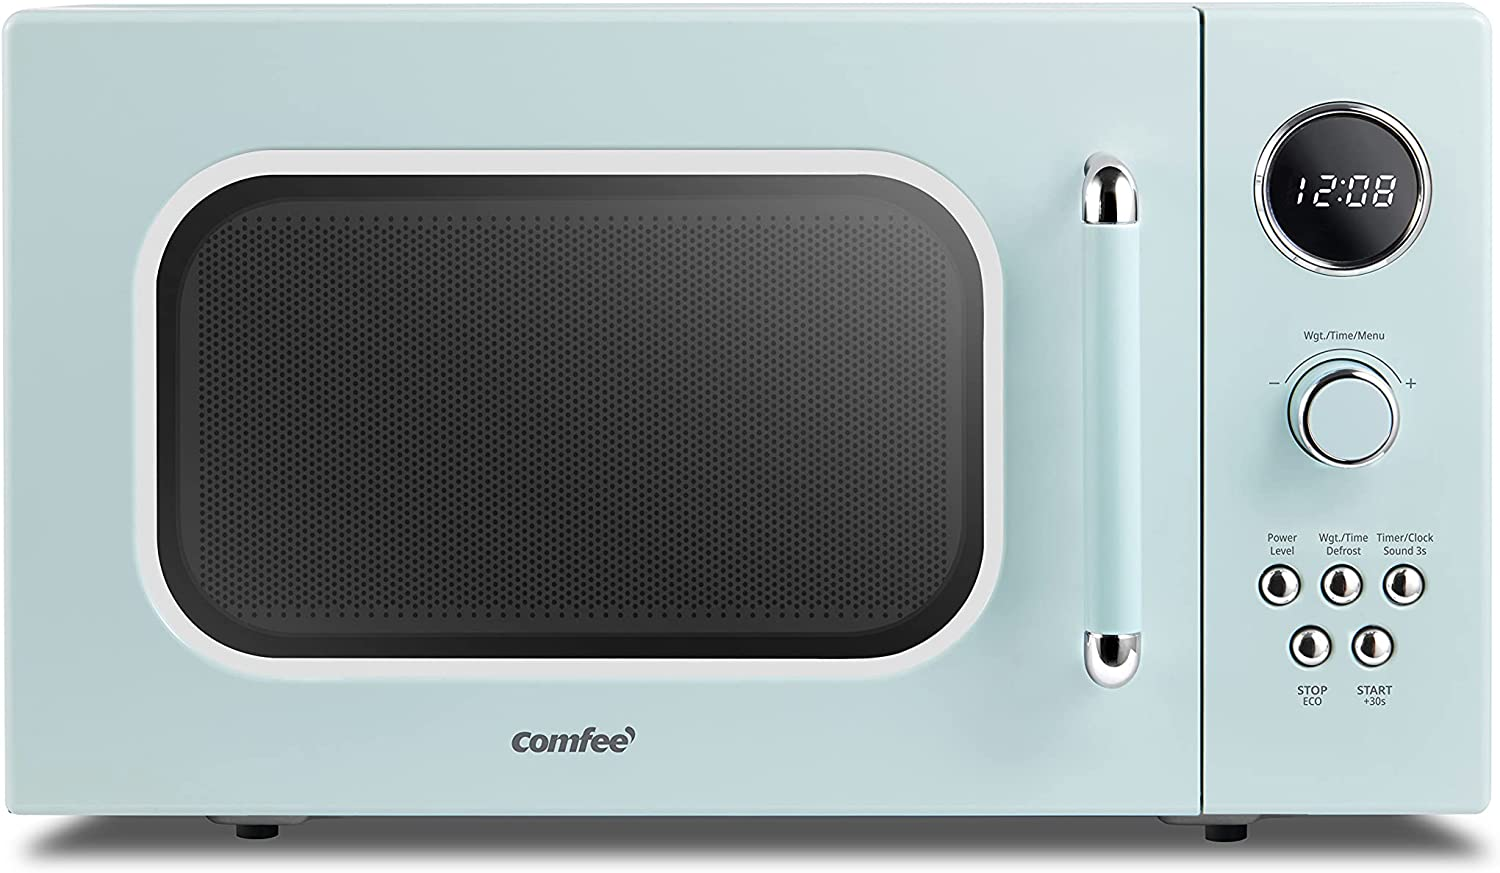 COMFEE' CM-M091AGN Retro Microwave with 9 Multi-stage discount Arlington Mall Cooking P